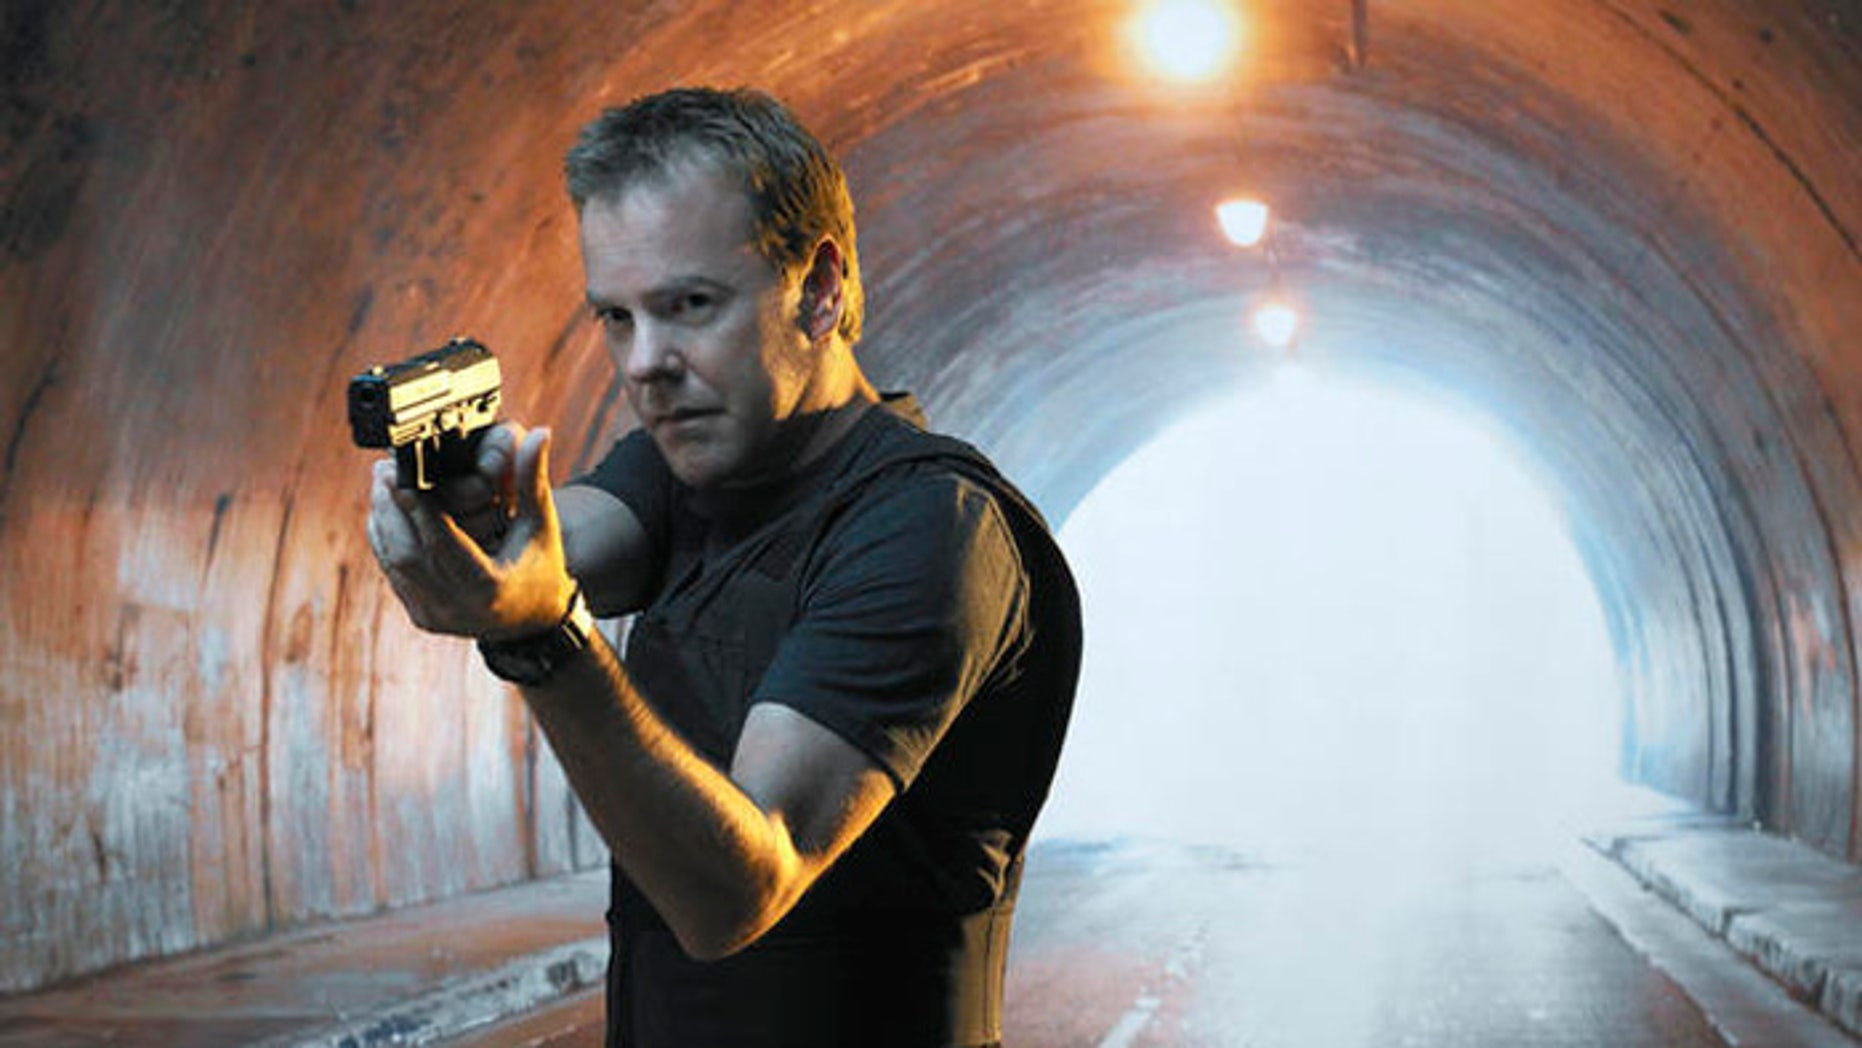 24: Kiefer Sutherland is Jack Bauer in the fourth season special two-hourpremiere of 24 Sunday, Jan. 9 (8:00-10:00 PM ET/PT). 24 airs in its regulartime period Mondays (9:00-10:00 PM ET/PT), starting Jan. 10 on FOX. ��2004 FOX BROADCASTING COMPANY. Cr: Anthony Mandler/FOX